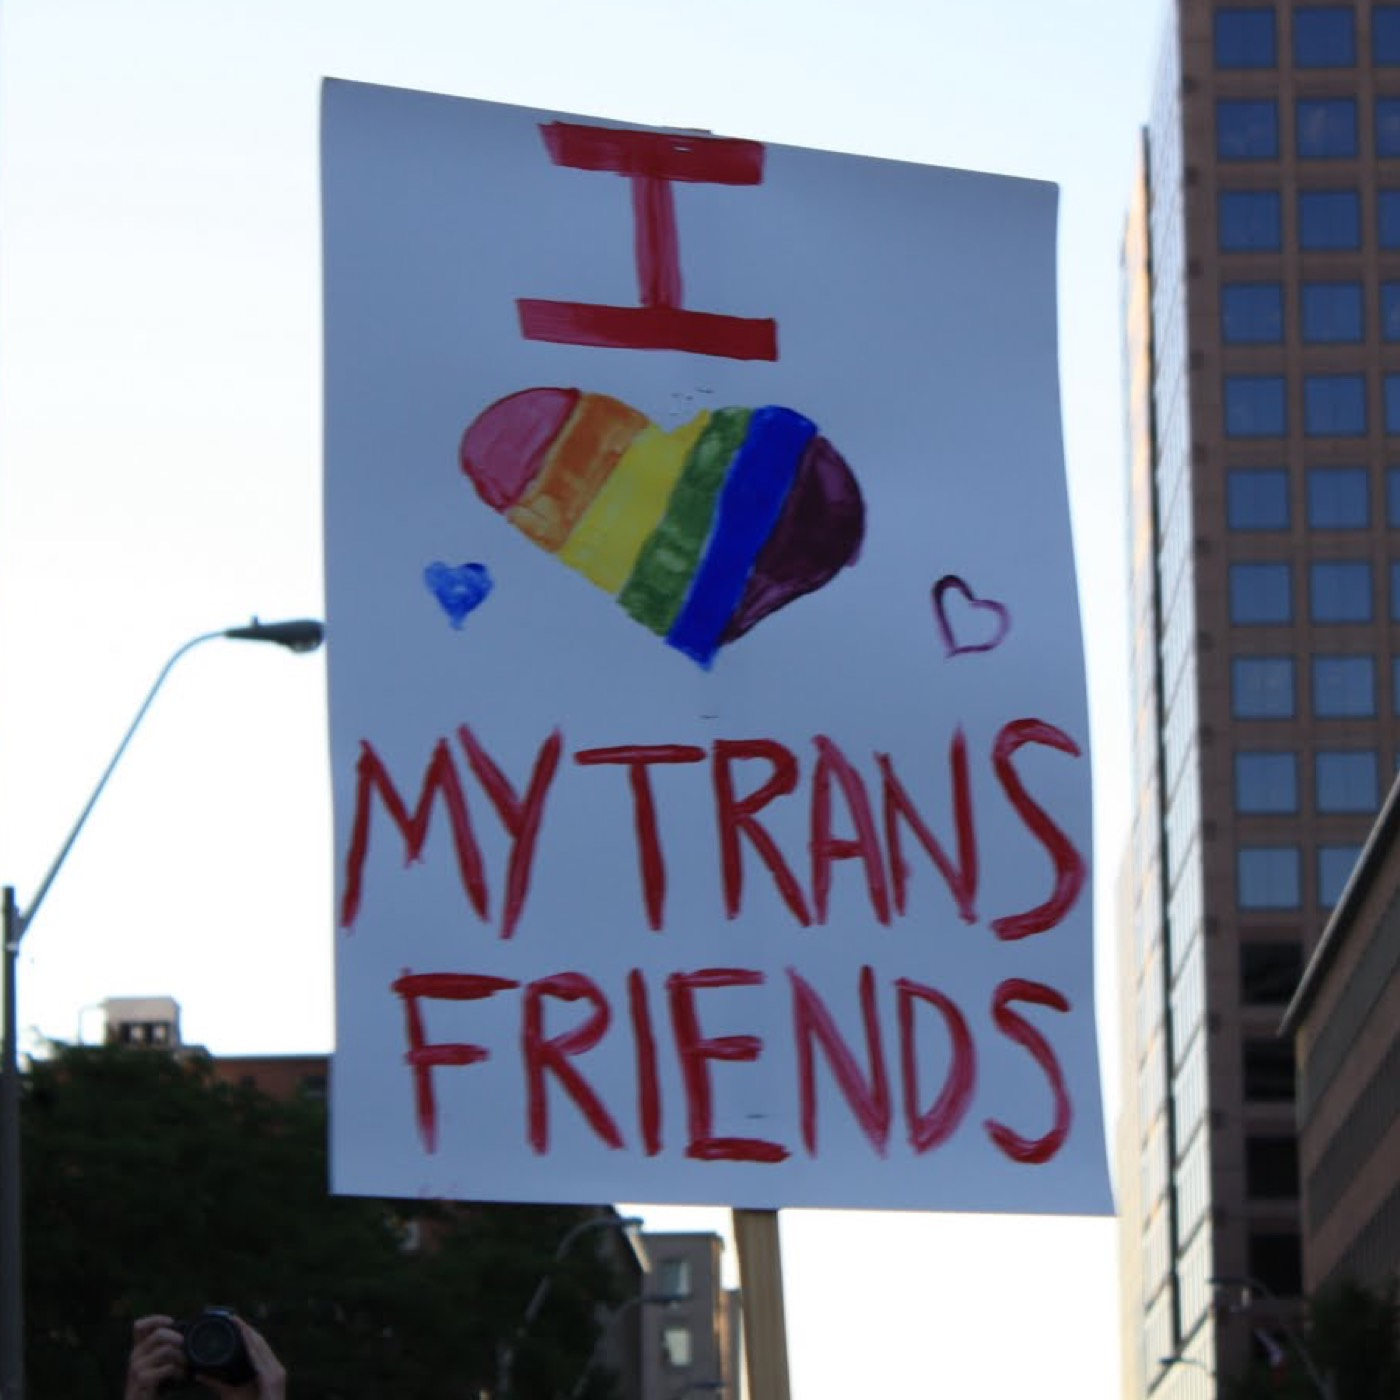 (2015/05/12) We all have a trans friend now (Bruce Jenner)